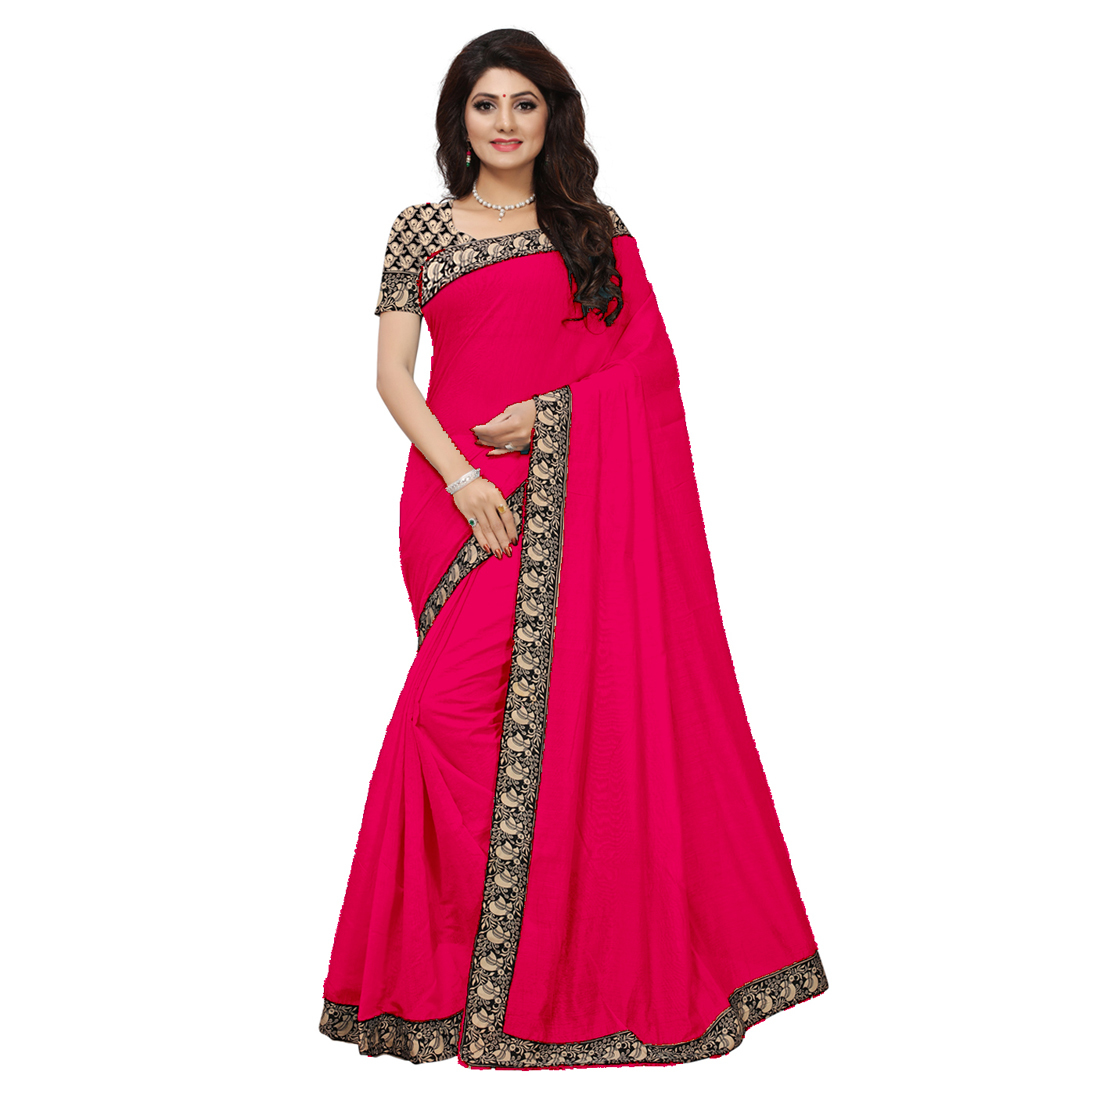 Casual Wear Chanderi Silk Saree with Lace Border